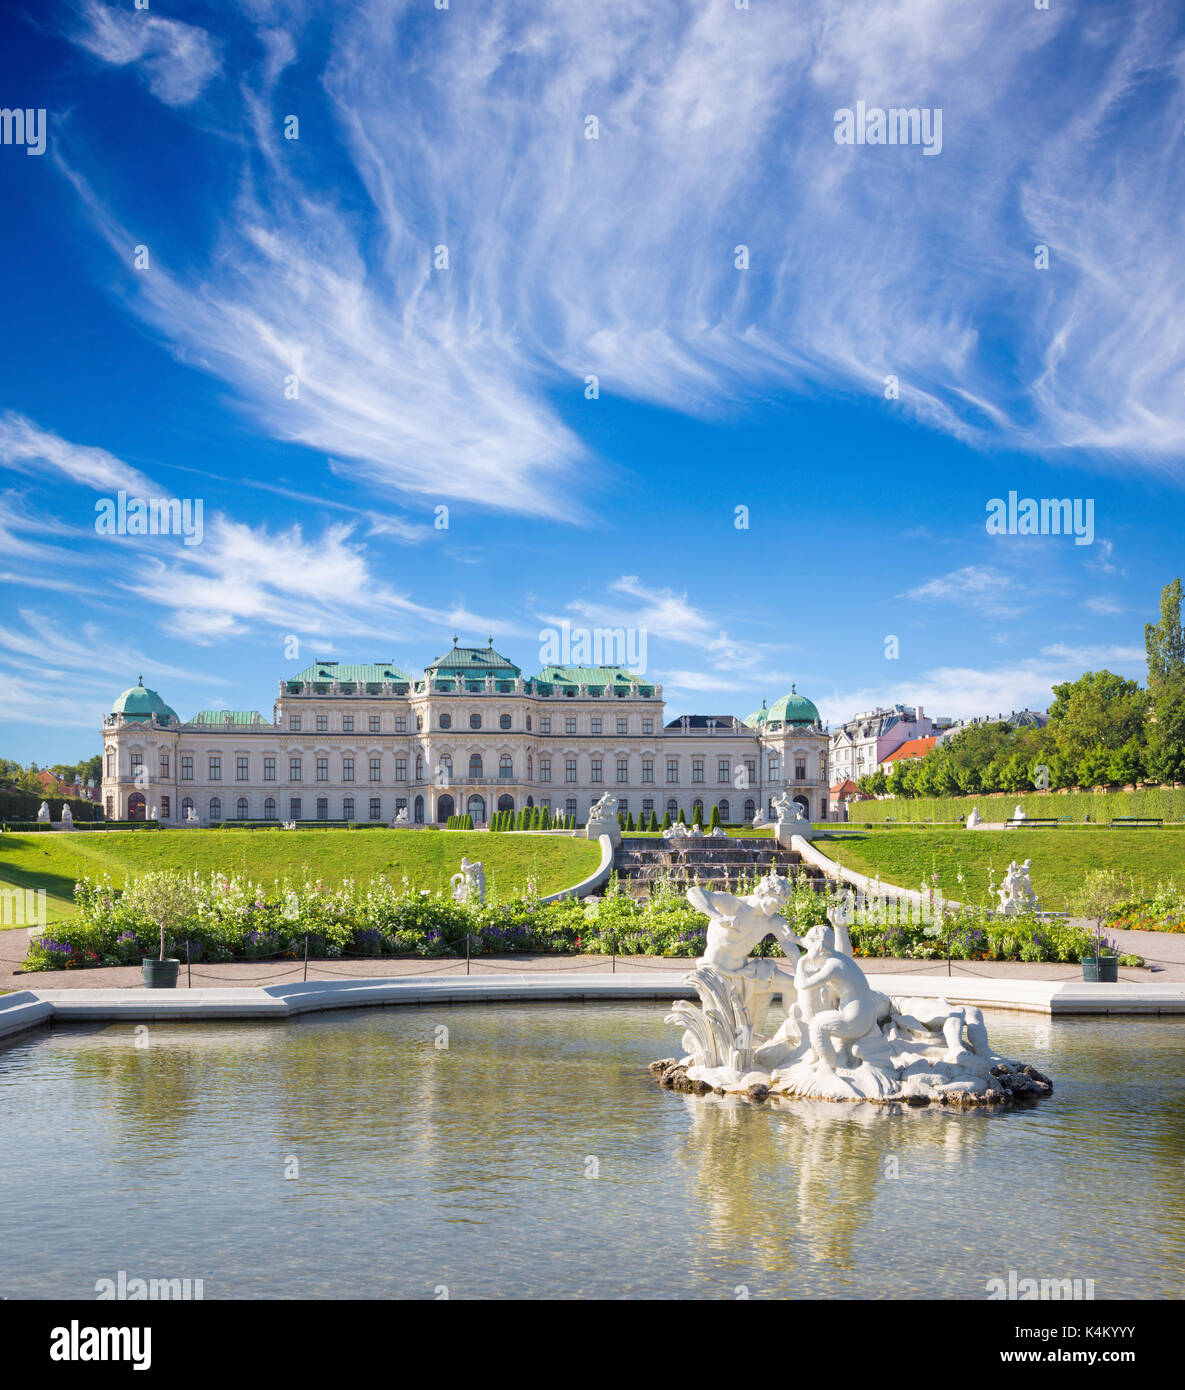 VIENNA, AUSTRIA - JULY 30, 2014: The fountain of Belvedere palace in morning. Stock Photo